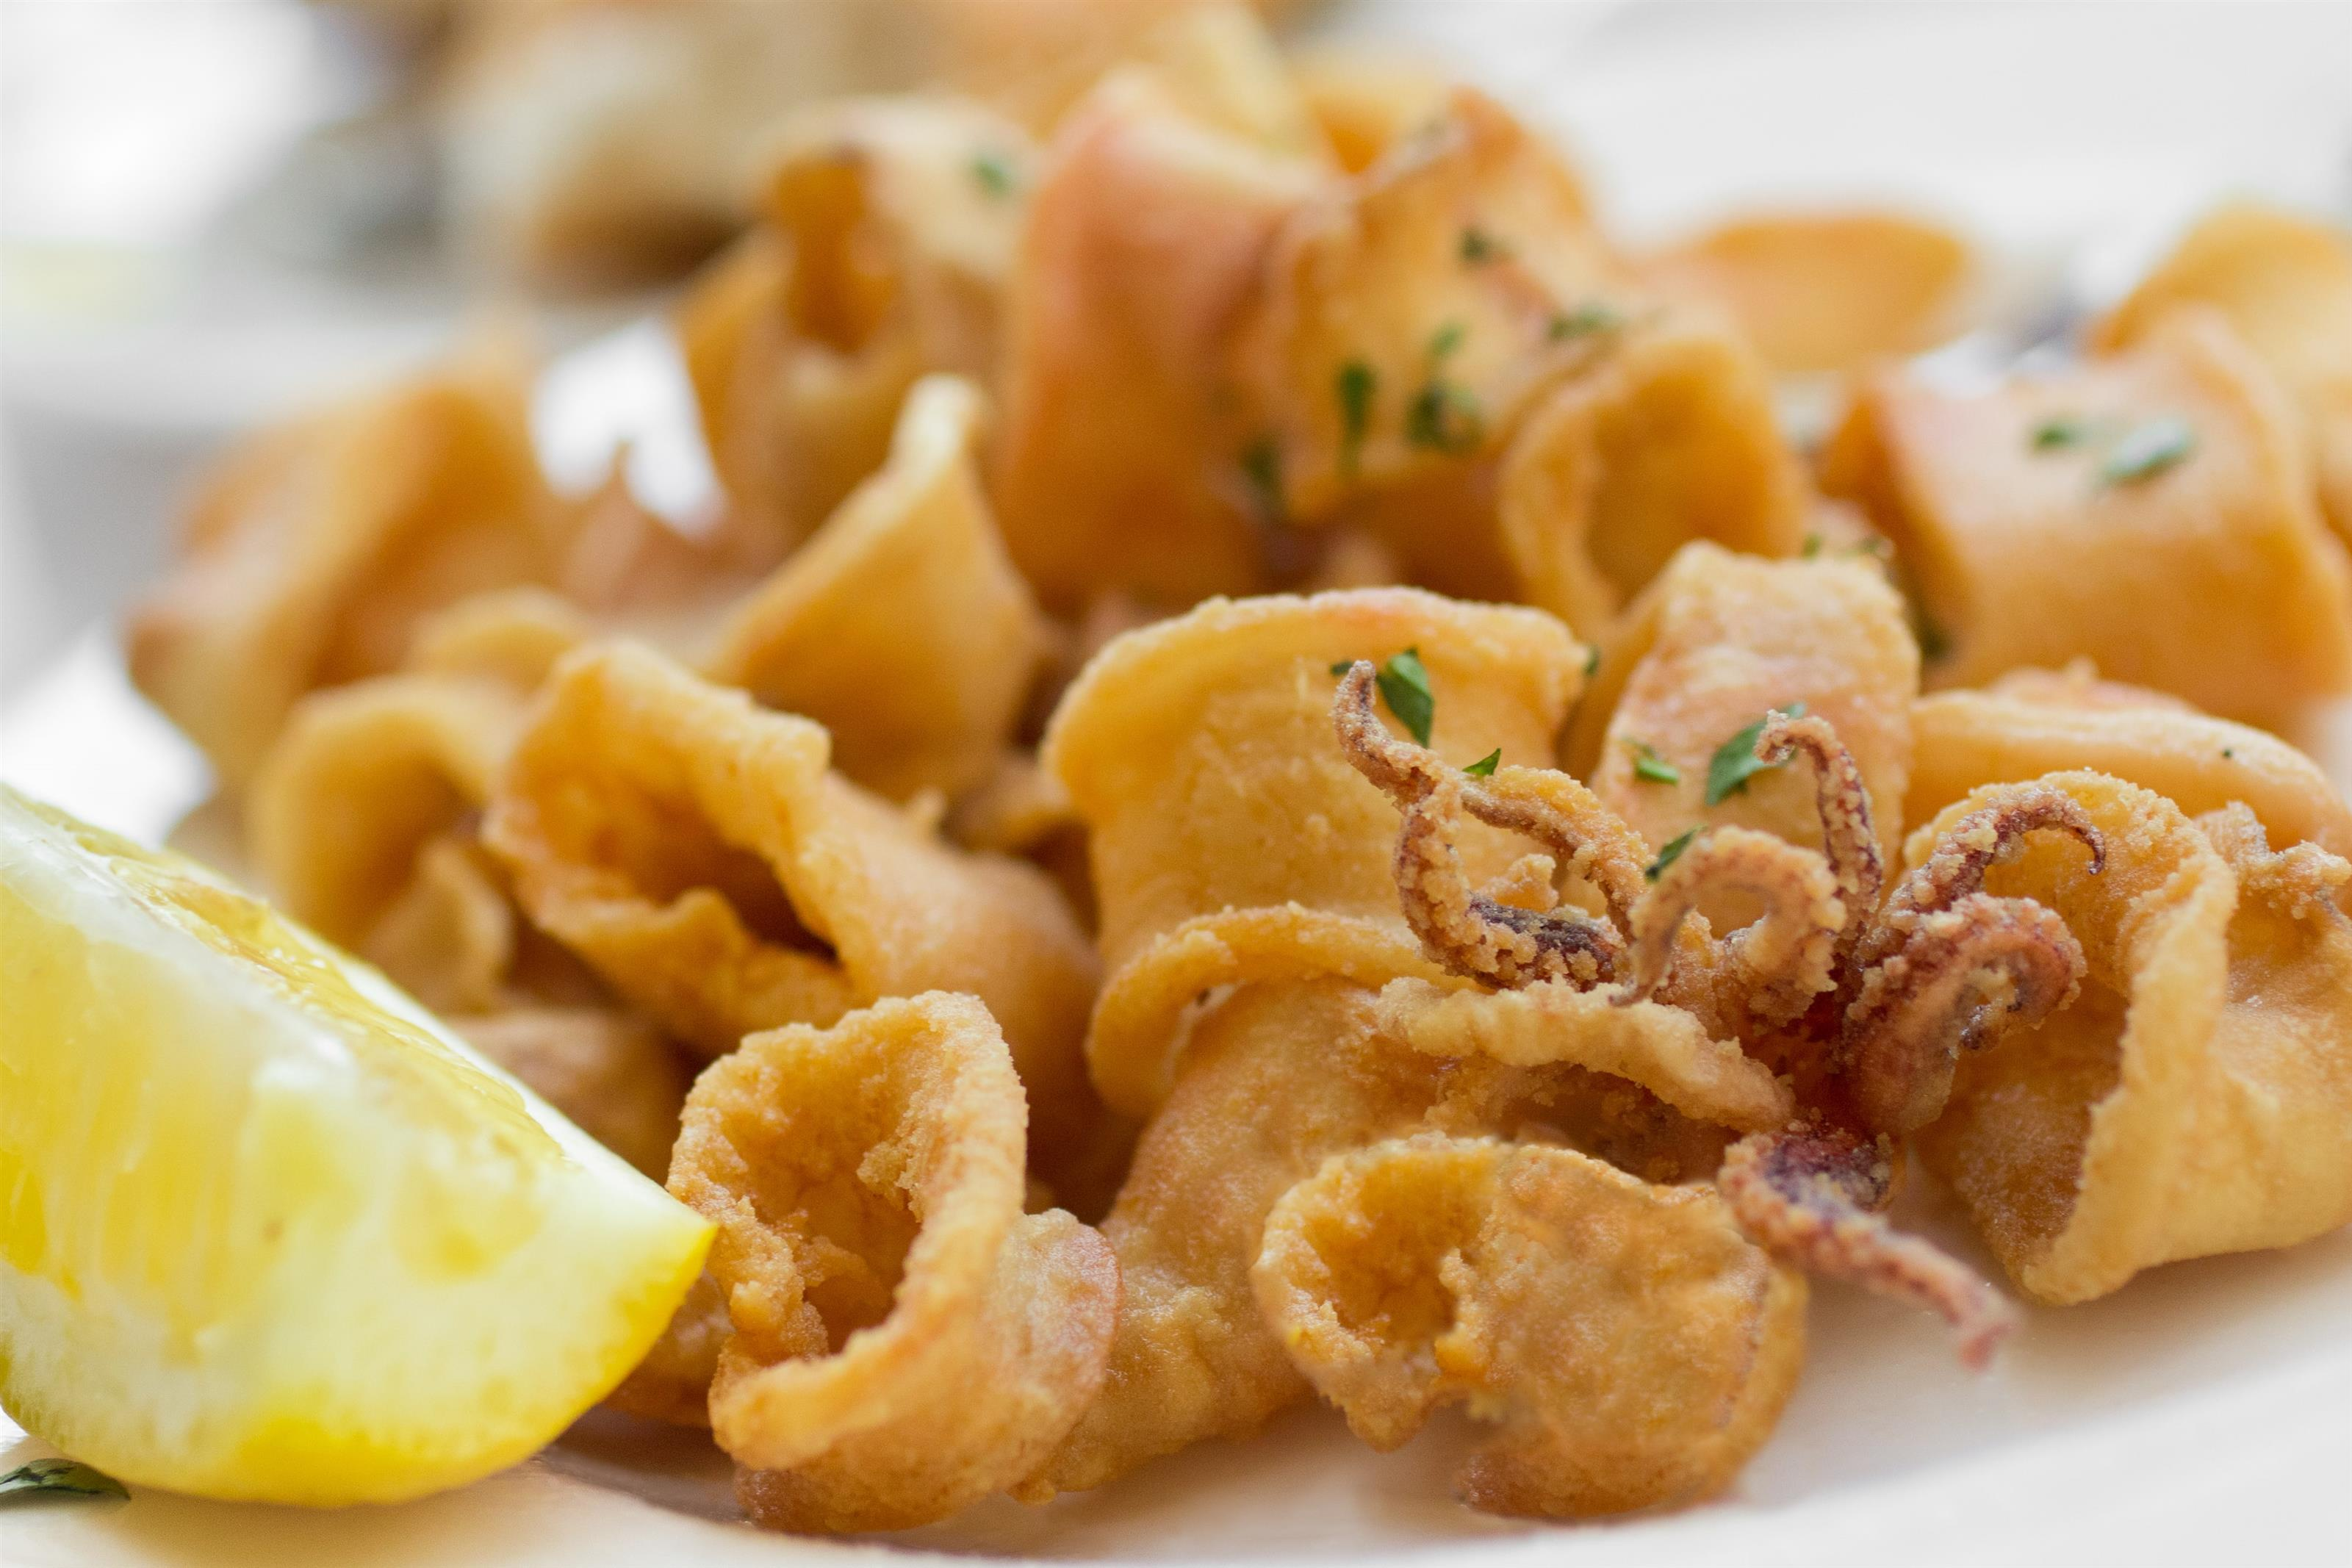 Fried calamari on a plate with a lemon wedge